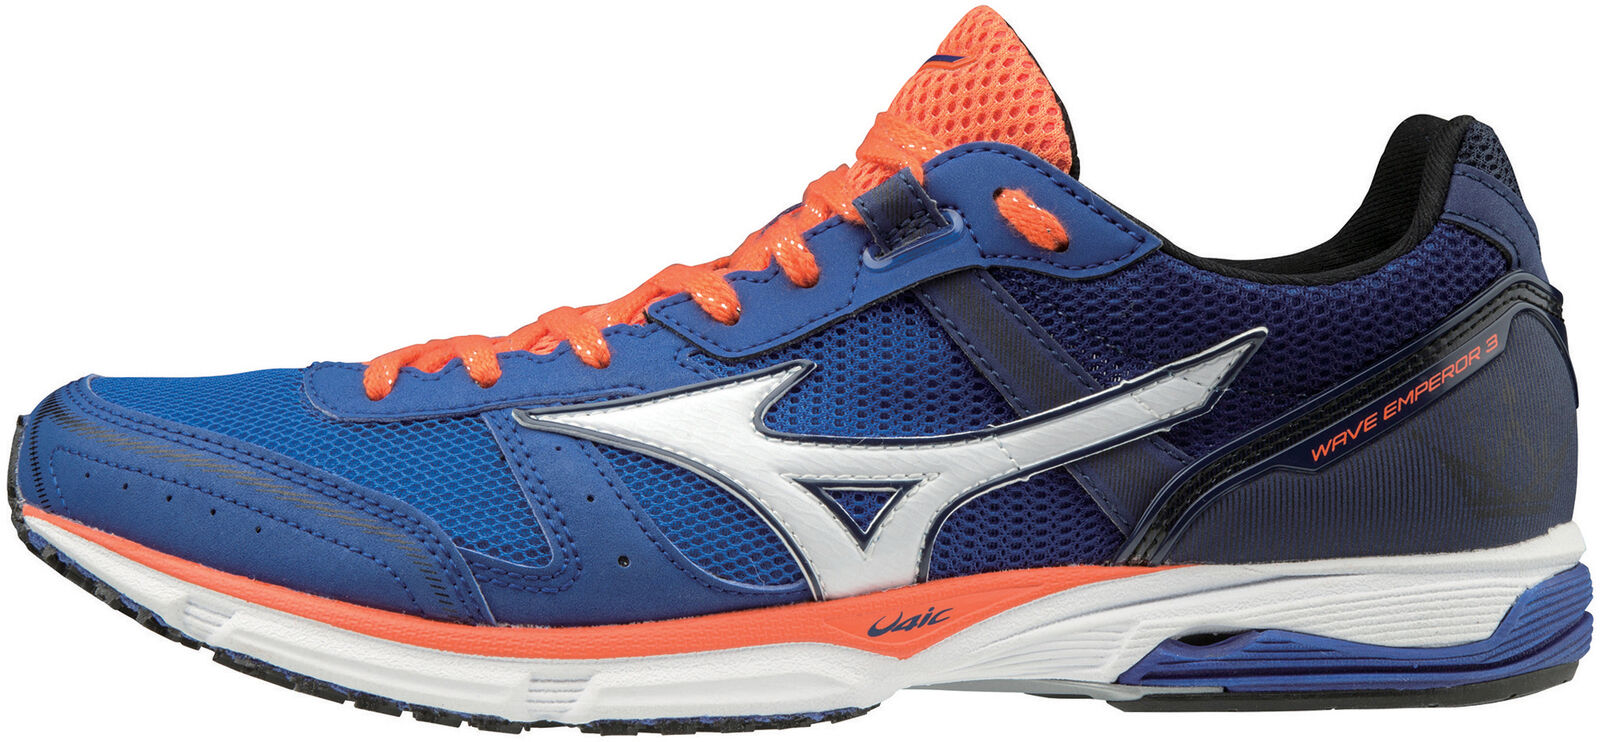 Wave Emperor 3 Mens Running shoes - bluee